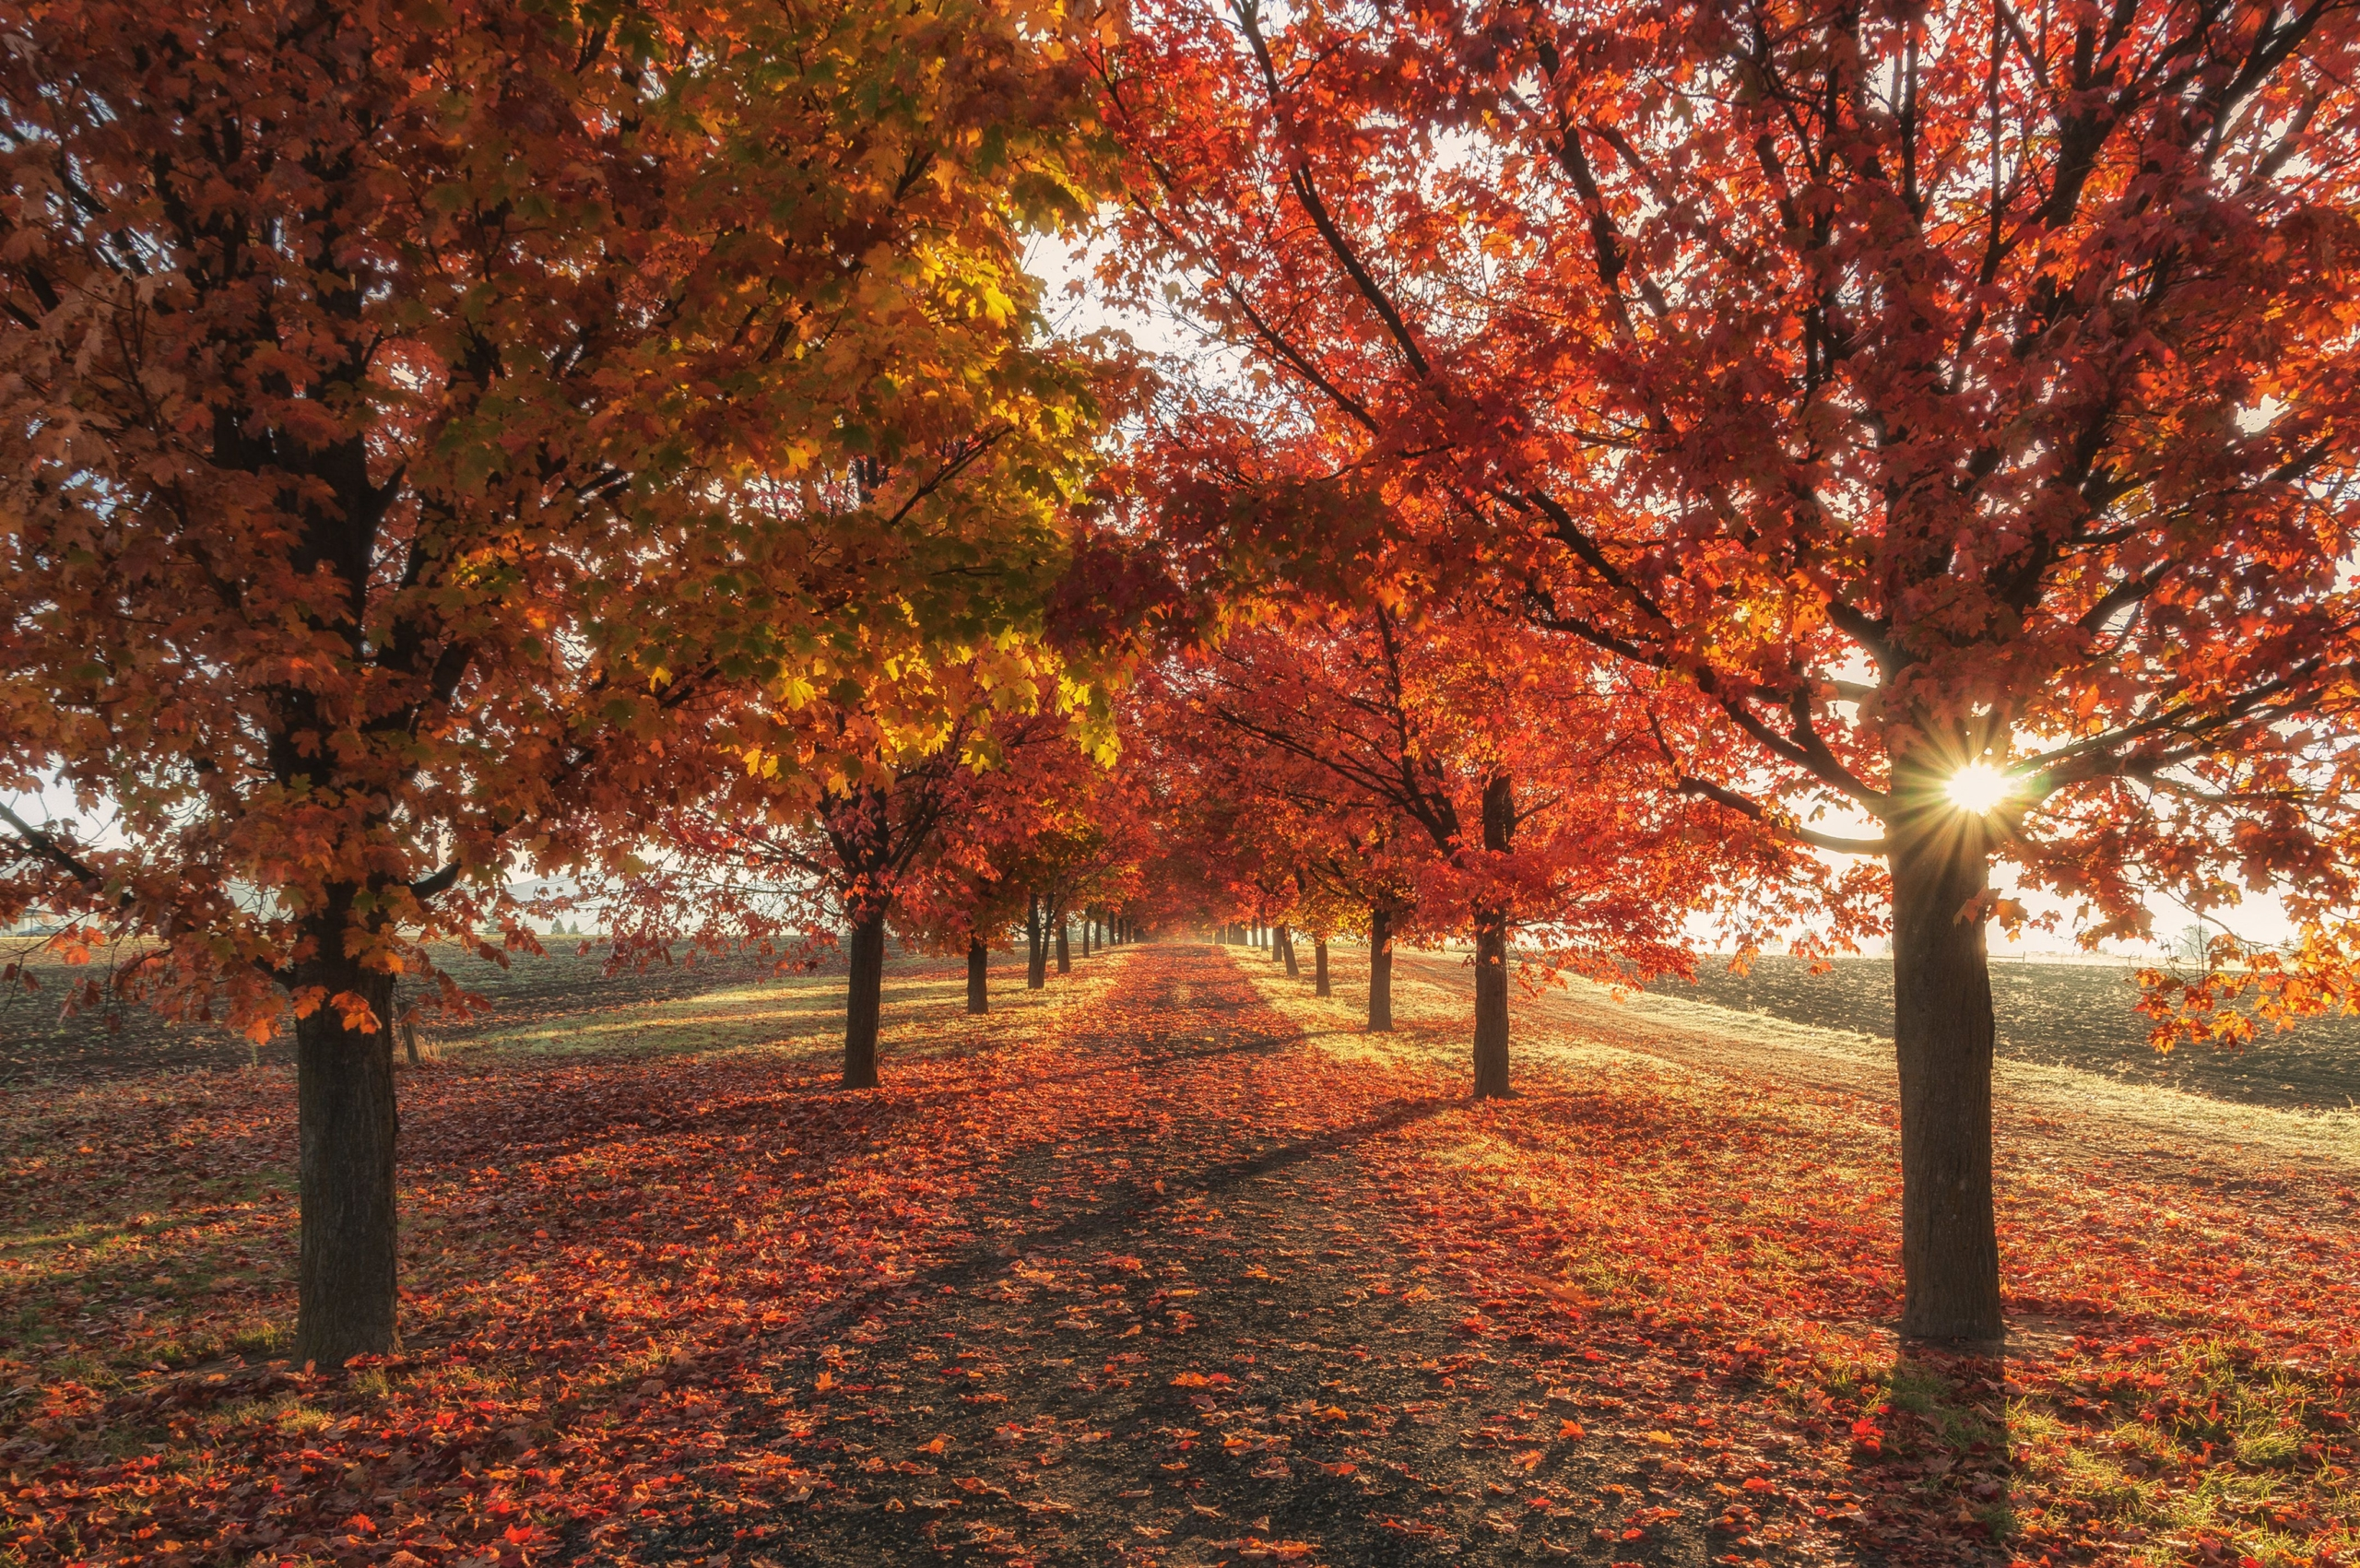 4K Autumn Wallpaper – Cool Decorative Wallpapers For Fall